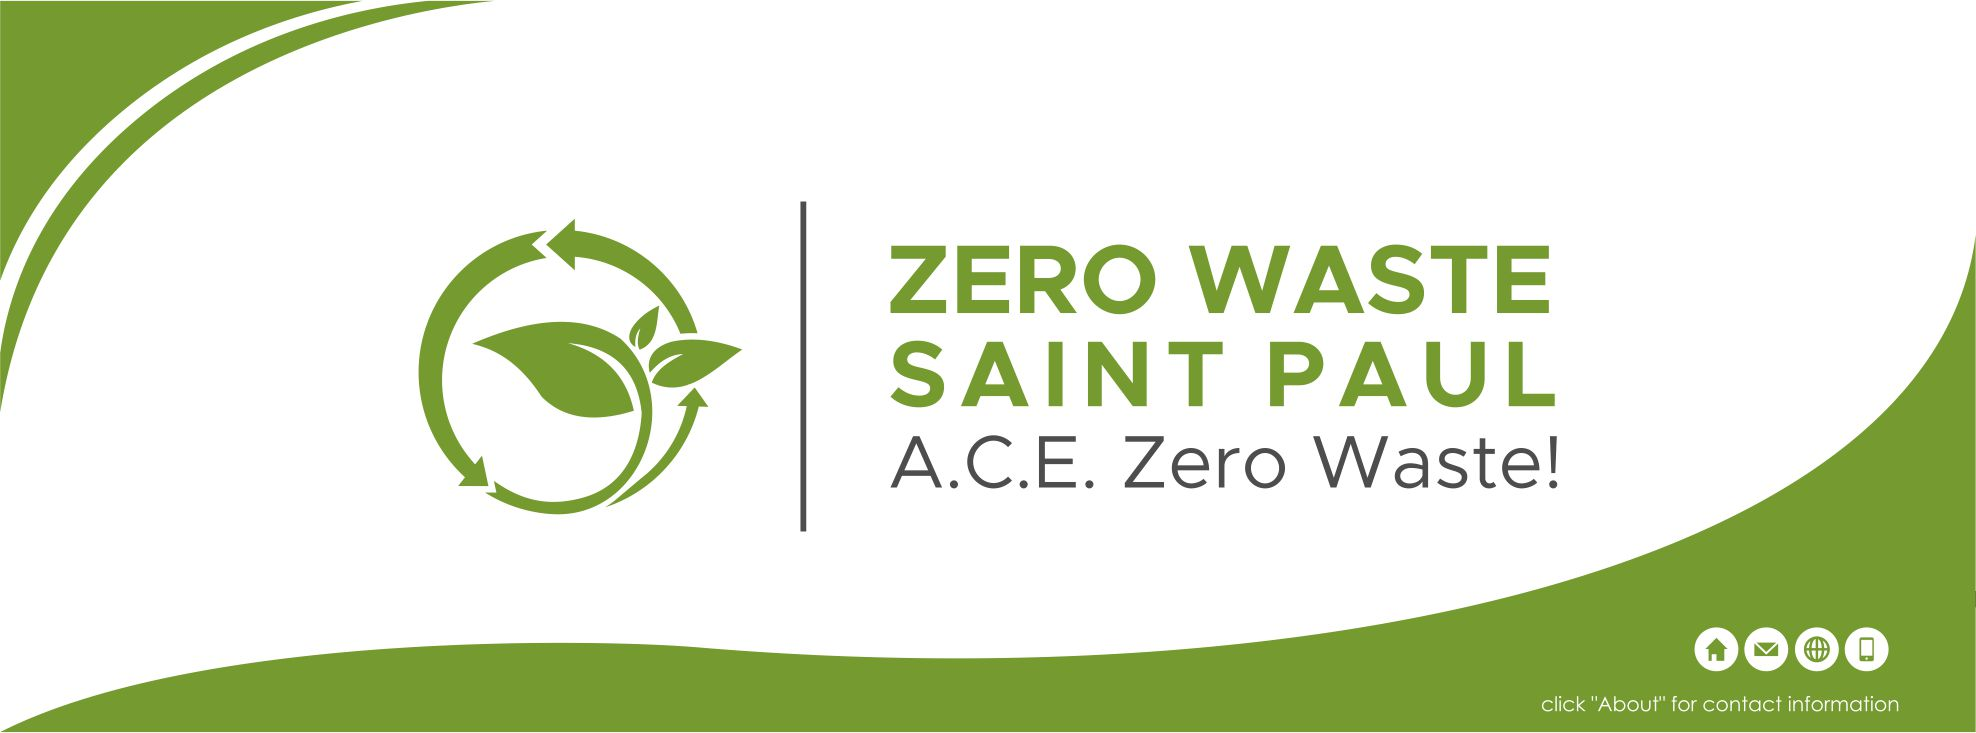 Zero_waste_saint_paul